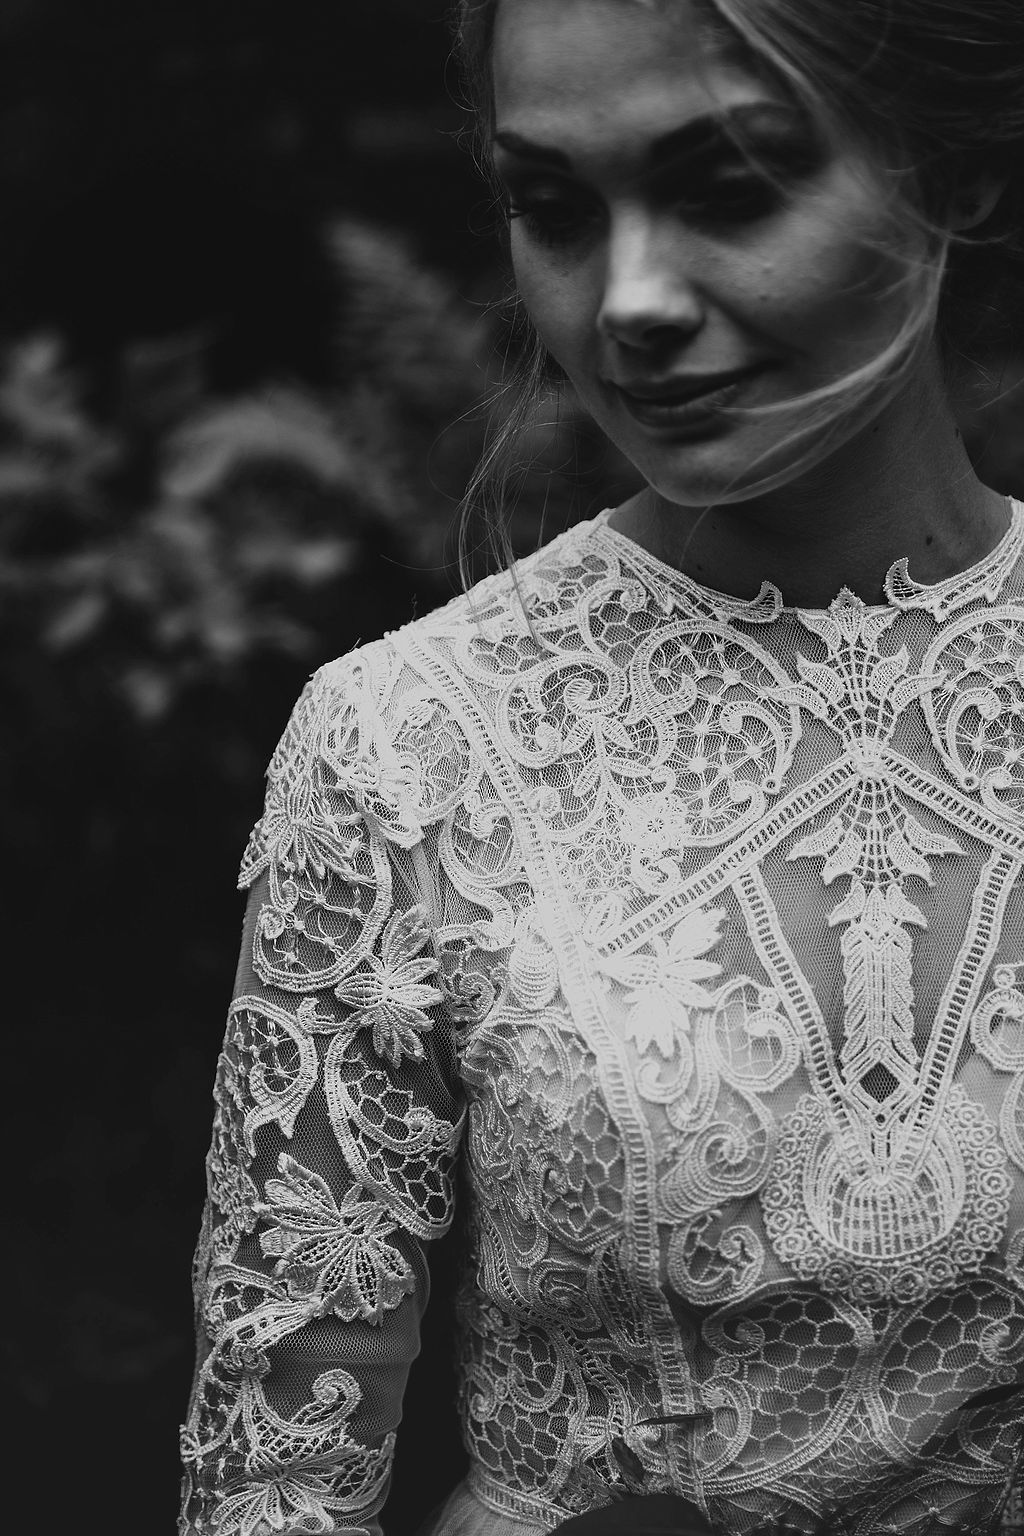 Categories: Weddings-Erica and Oyvinds- Photography by Lieben photography, Synnøve Seljeseth